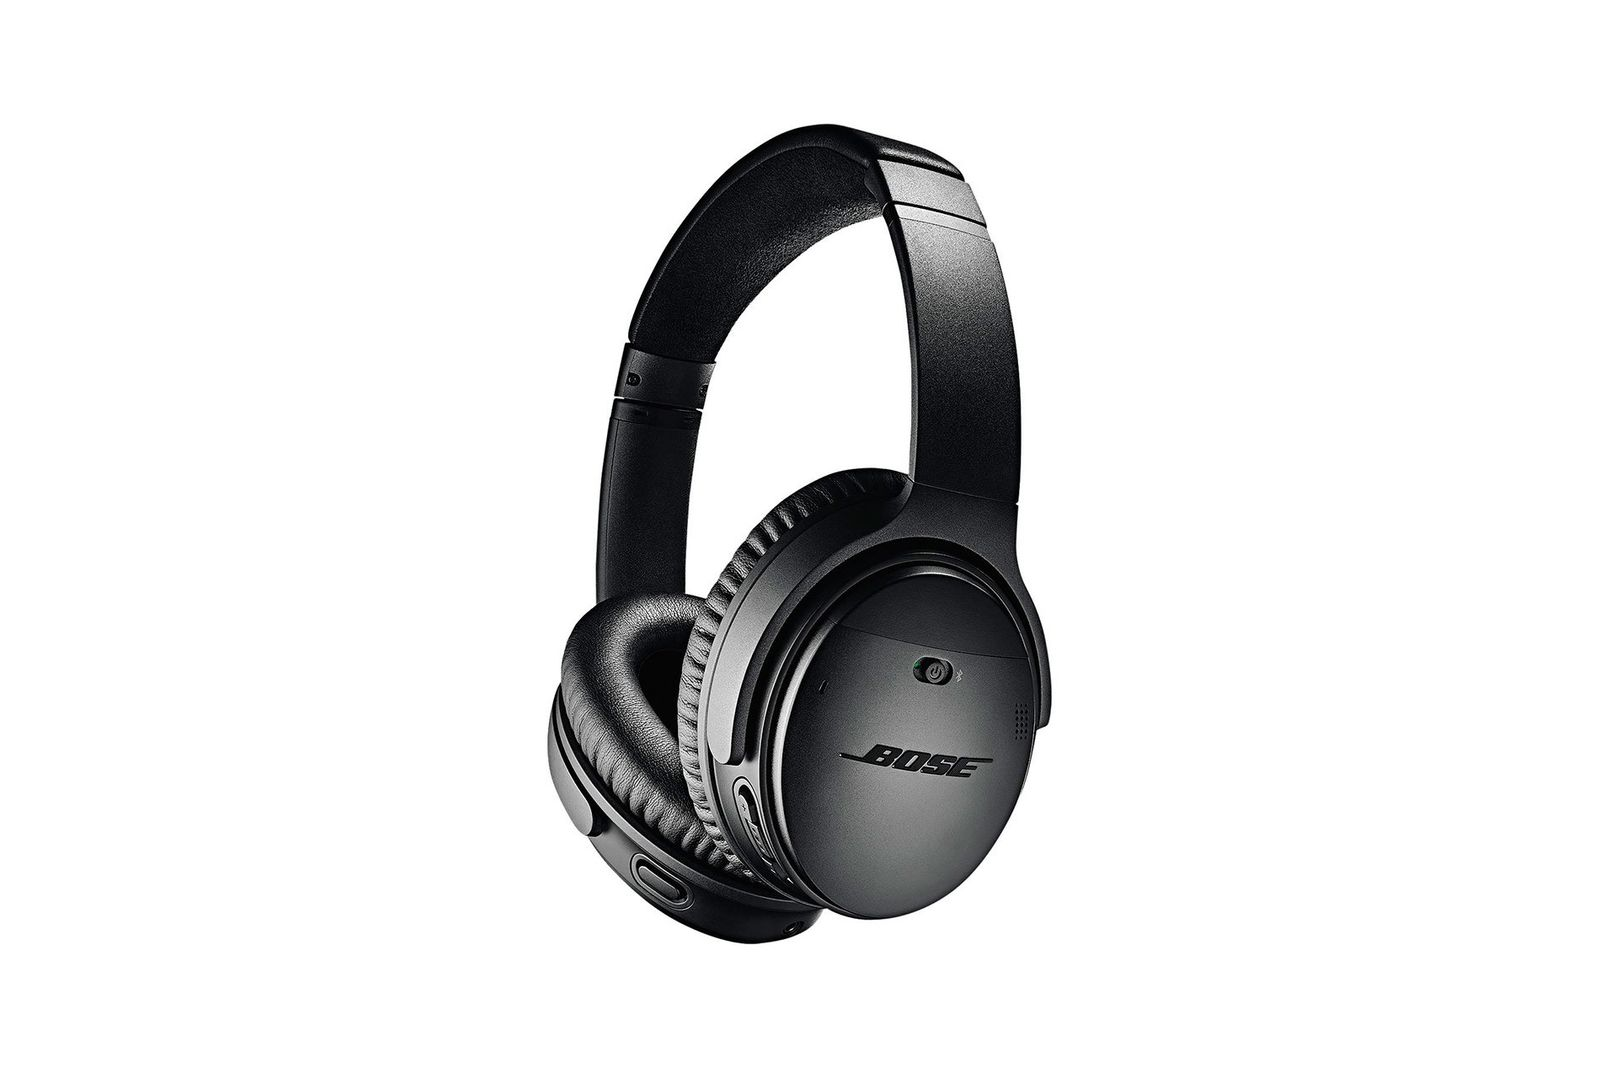 Win a pair of Bose noise-cancelling headphones worth £250